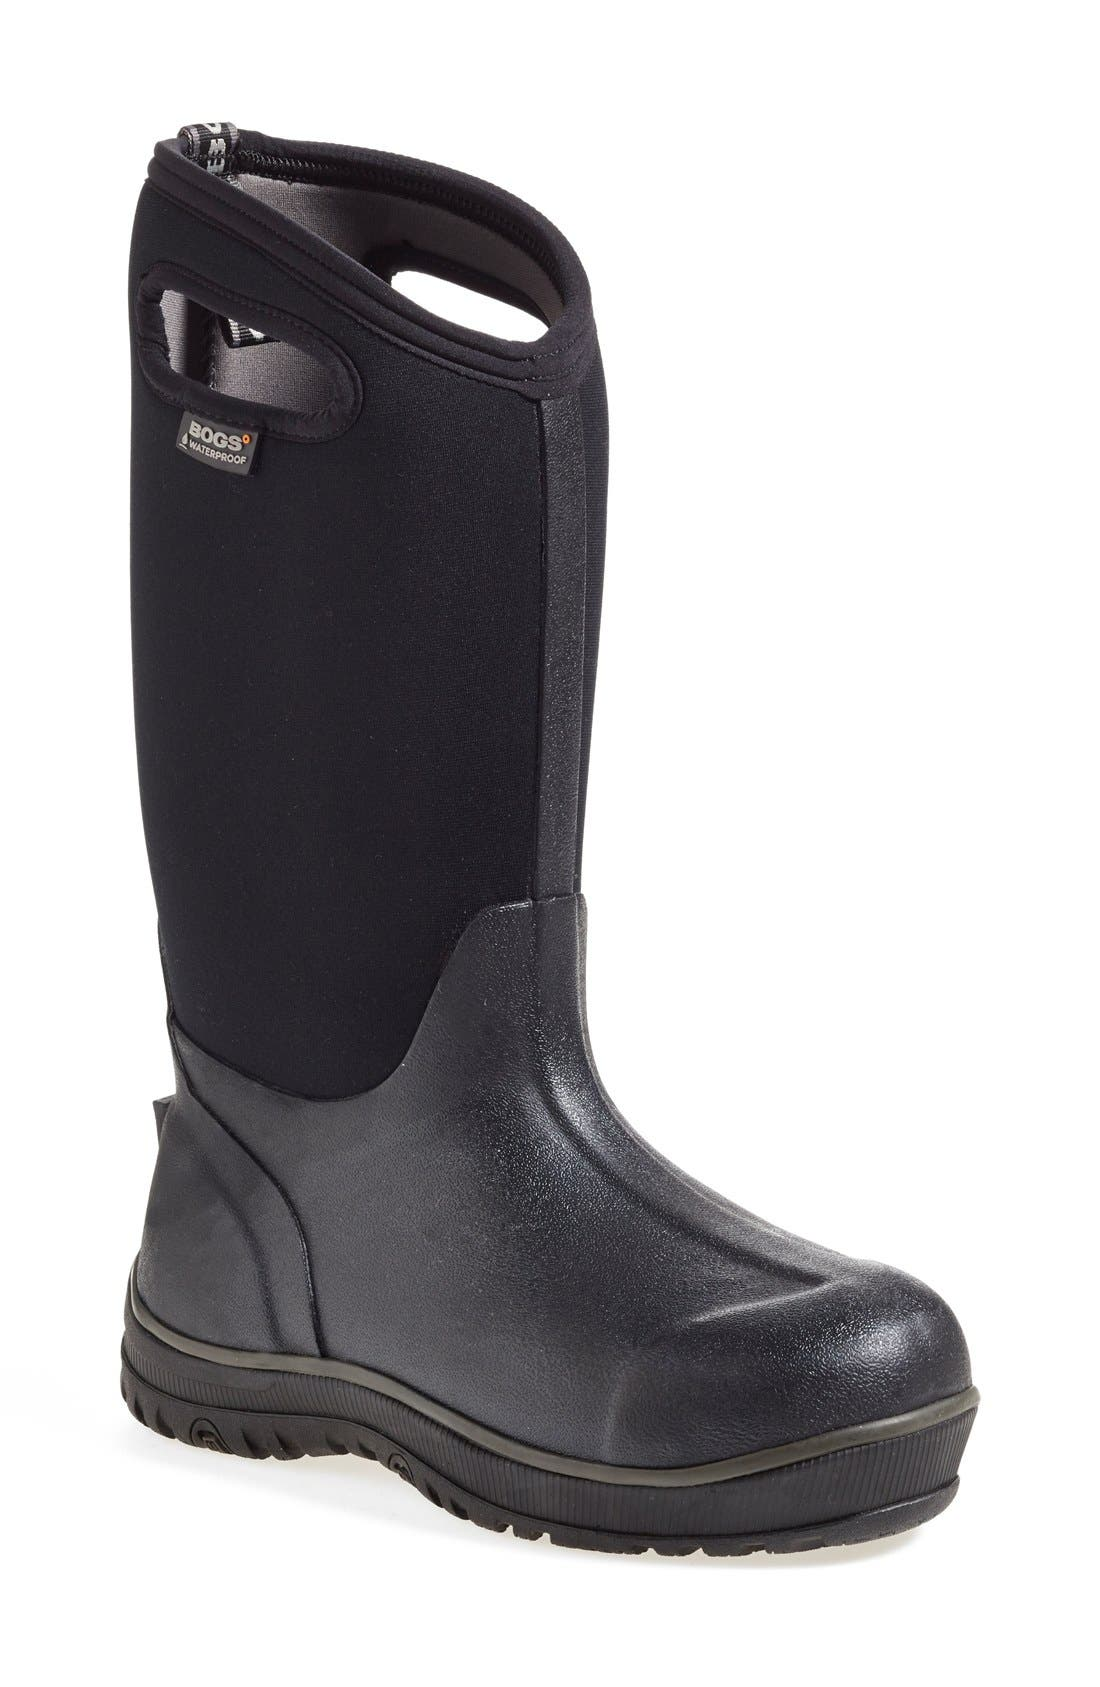 BOGS 'Classic' Ultra High Waterproof Snow Boot with